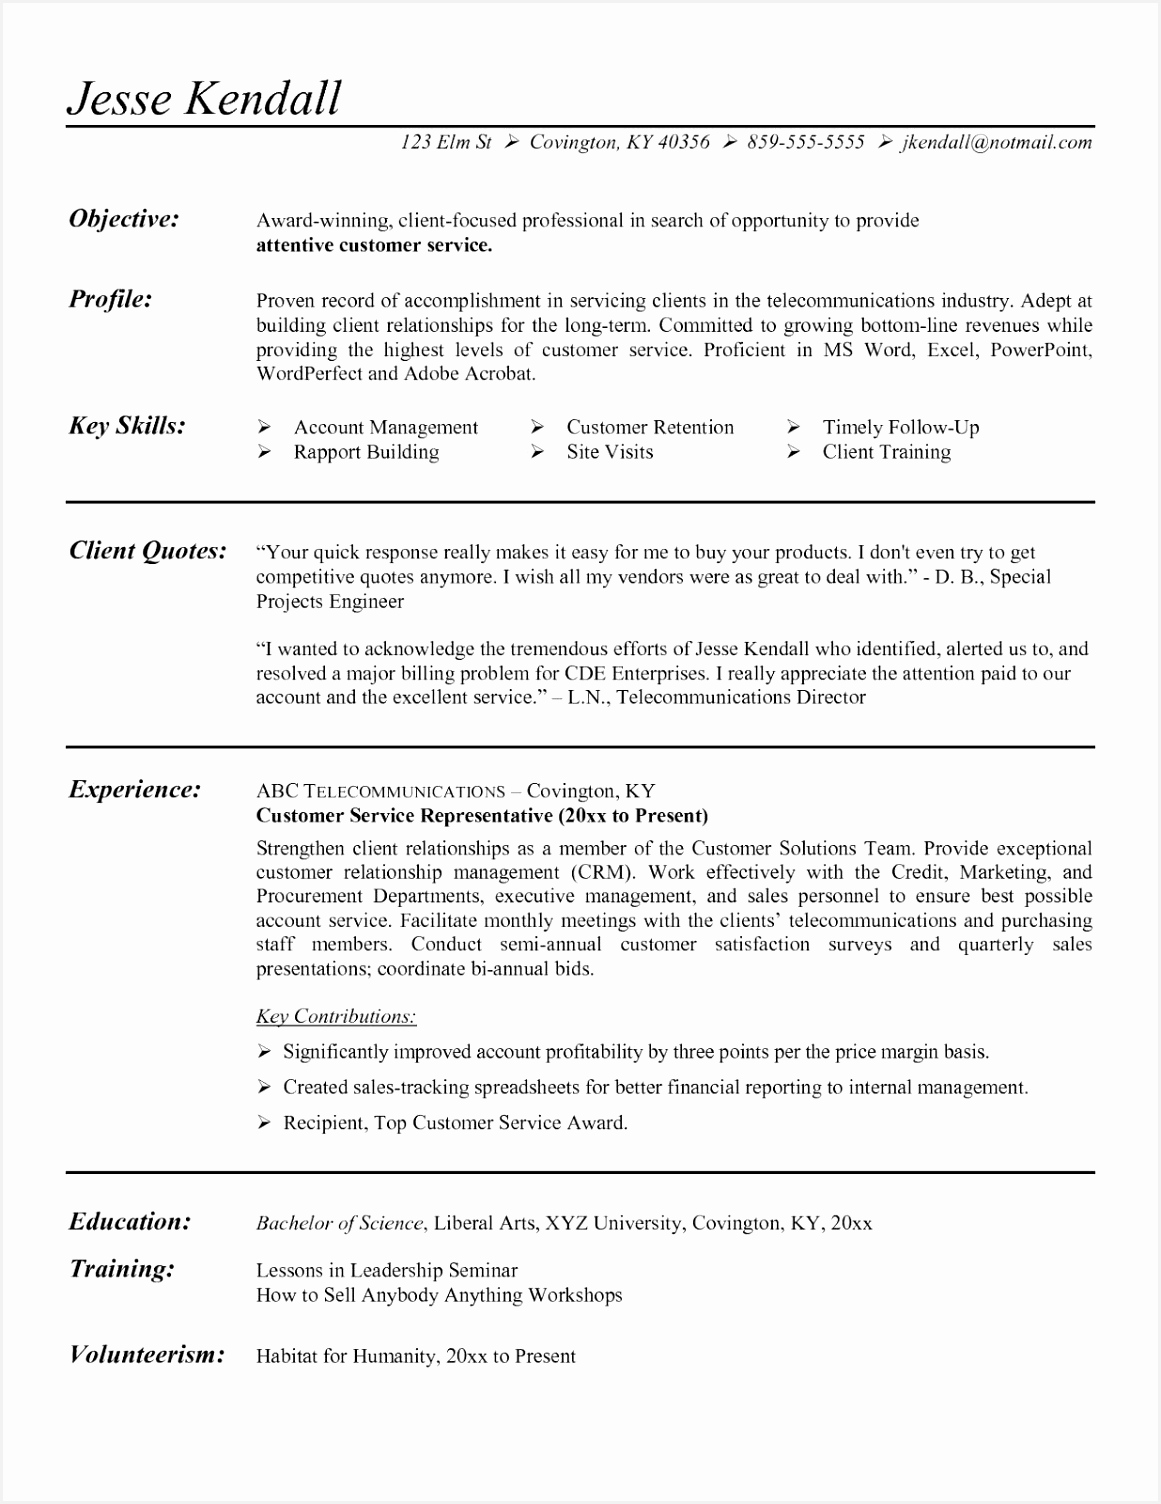 Sample Healthcare Marketing Resume Fovyk Unique Medical Representative Resume Sample Pdf New Best Resume Samples New15041161